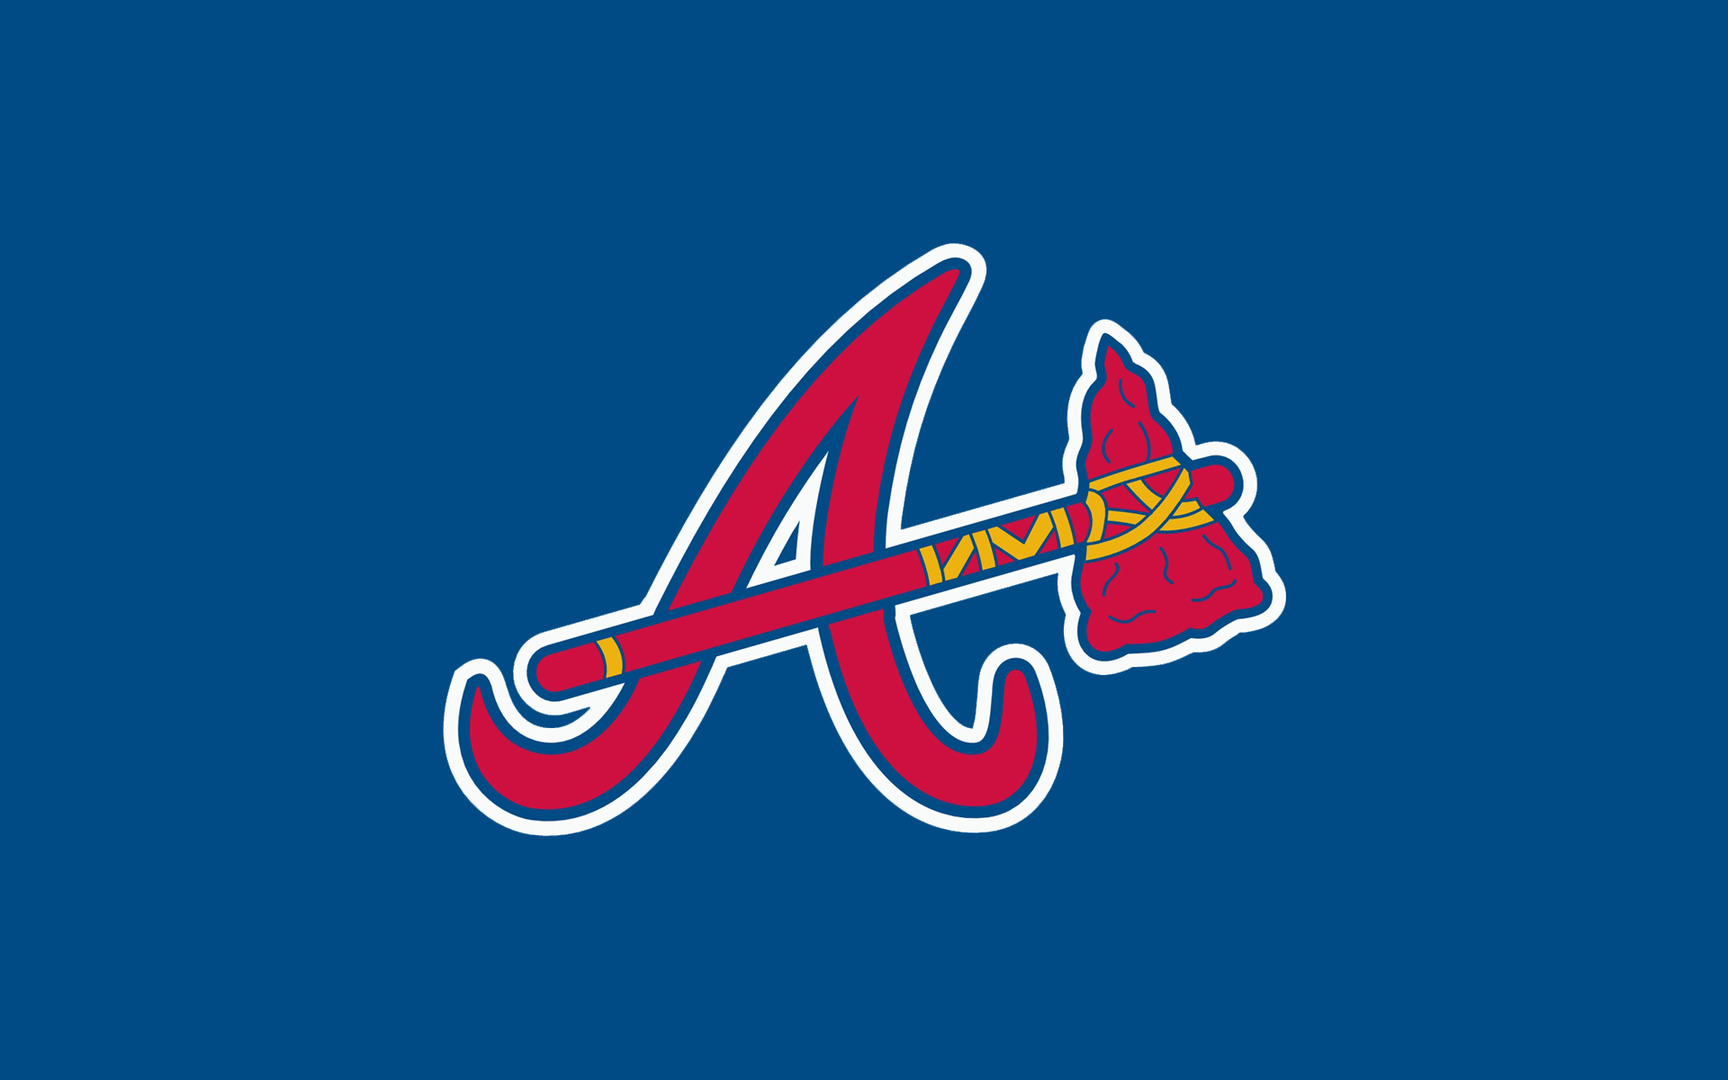 Atlanta Braves wallpaper 19702 1728x1080